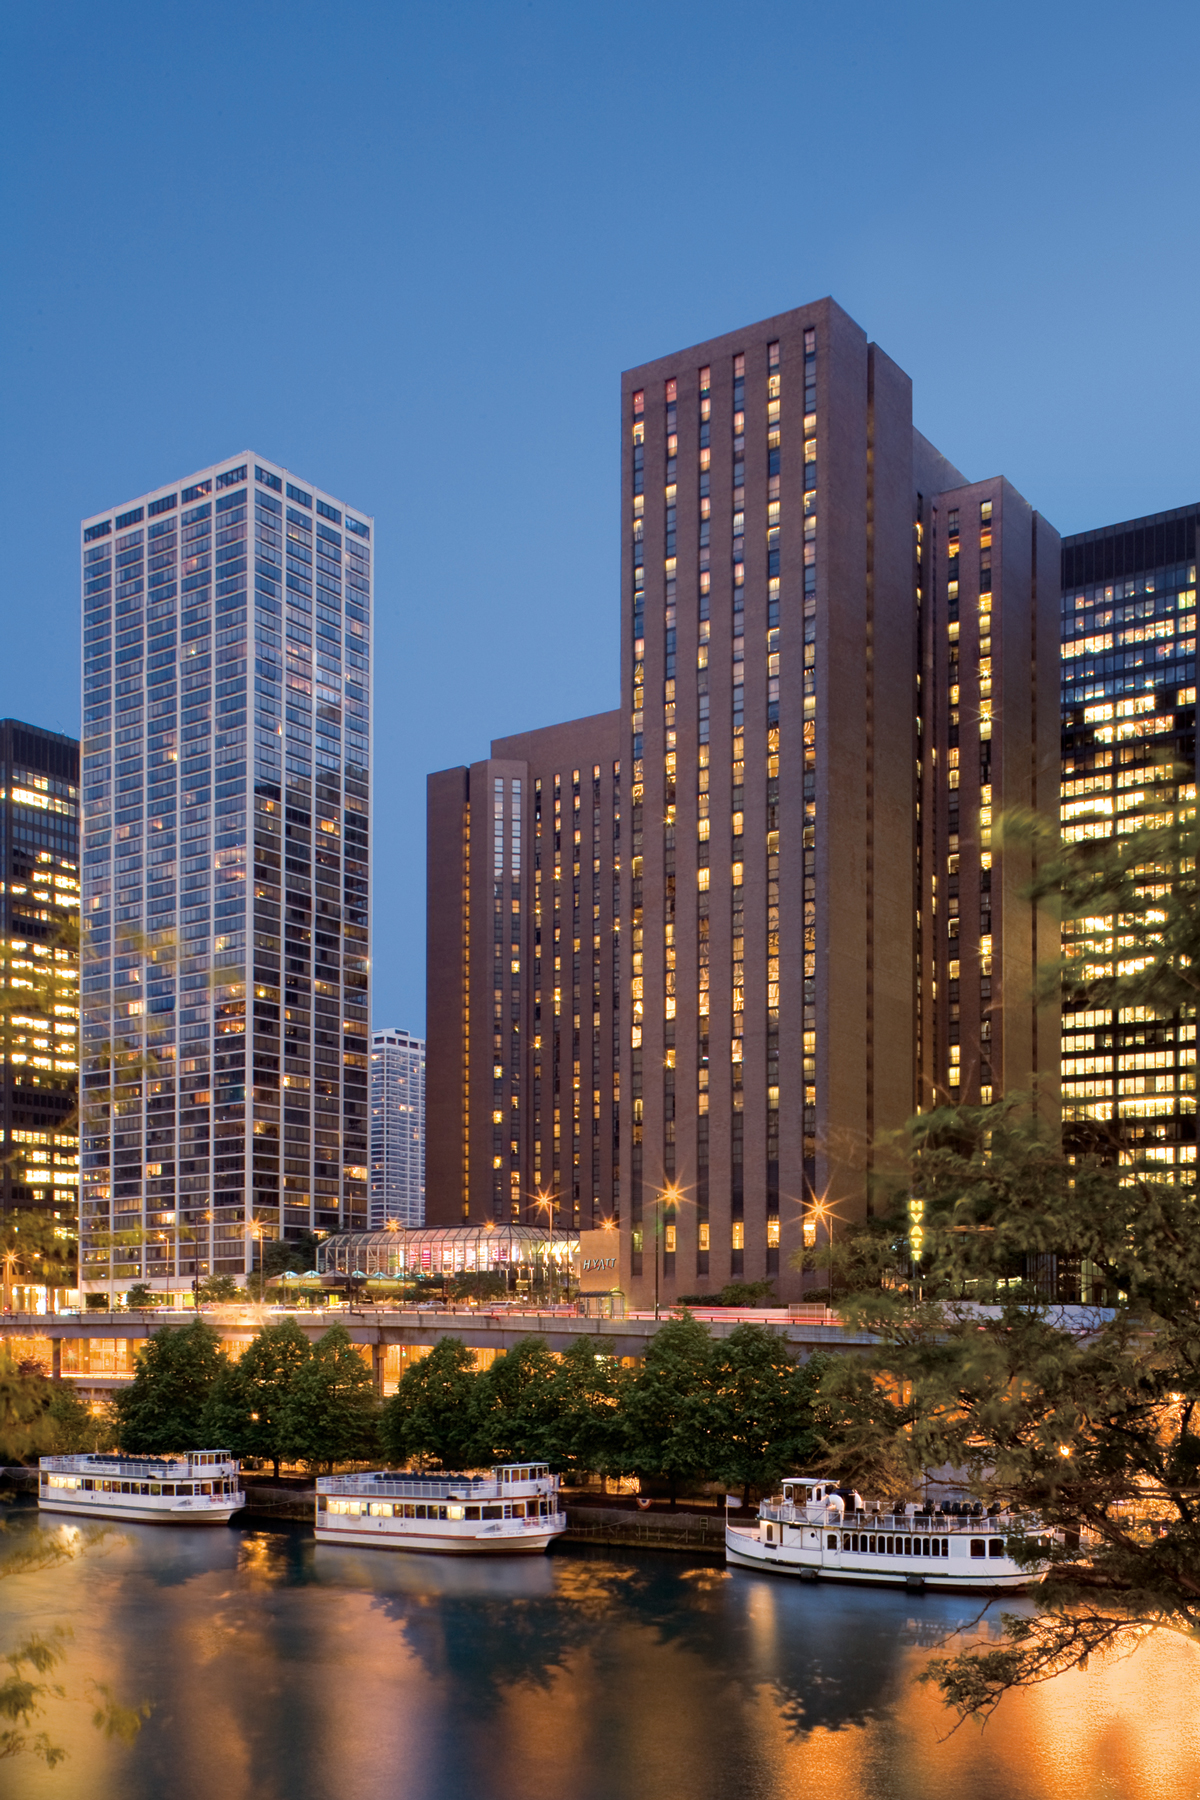 Hyatt Regency Chicago oversees the Chicago River and is adjacent to Lake Michigan.